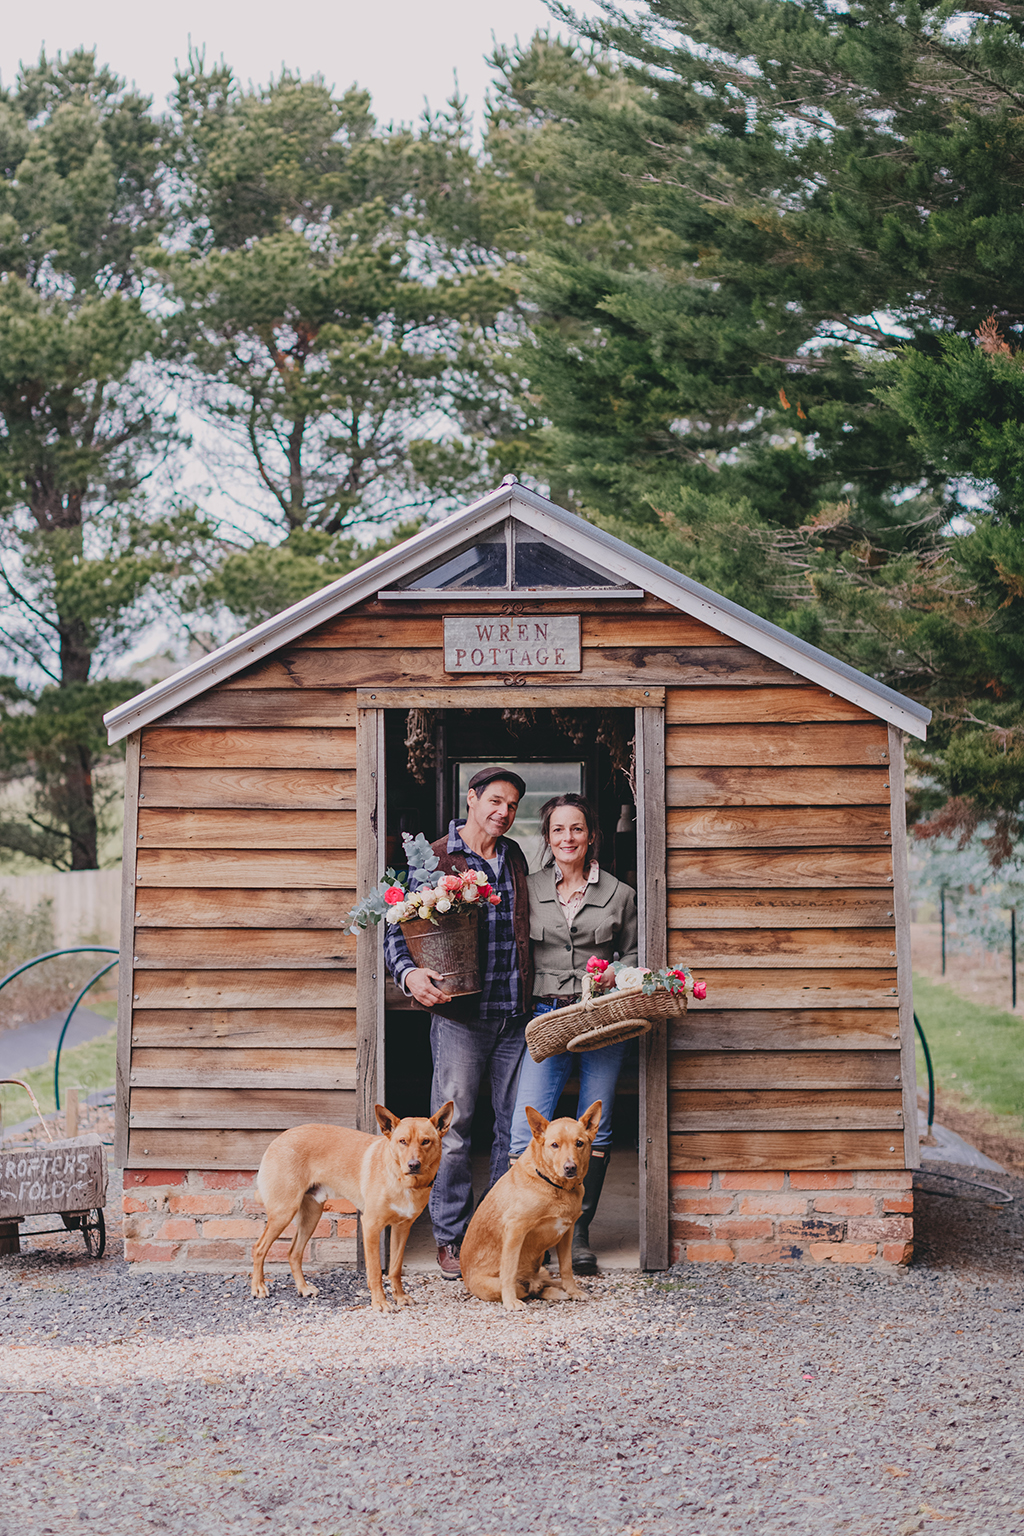 Ashley, Danielle, Mudgee + Magoo at their potting shed. Photo:  Chloe Smith Photography , 2018.